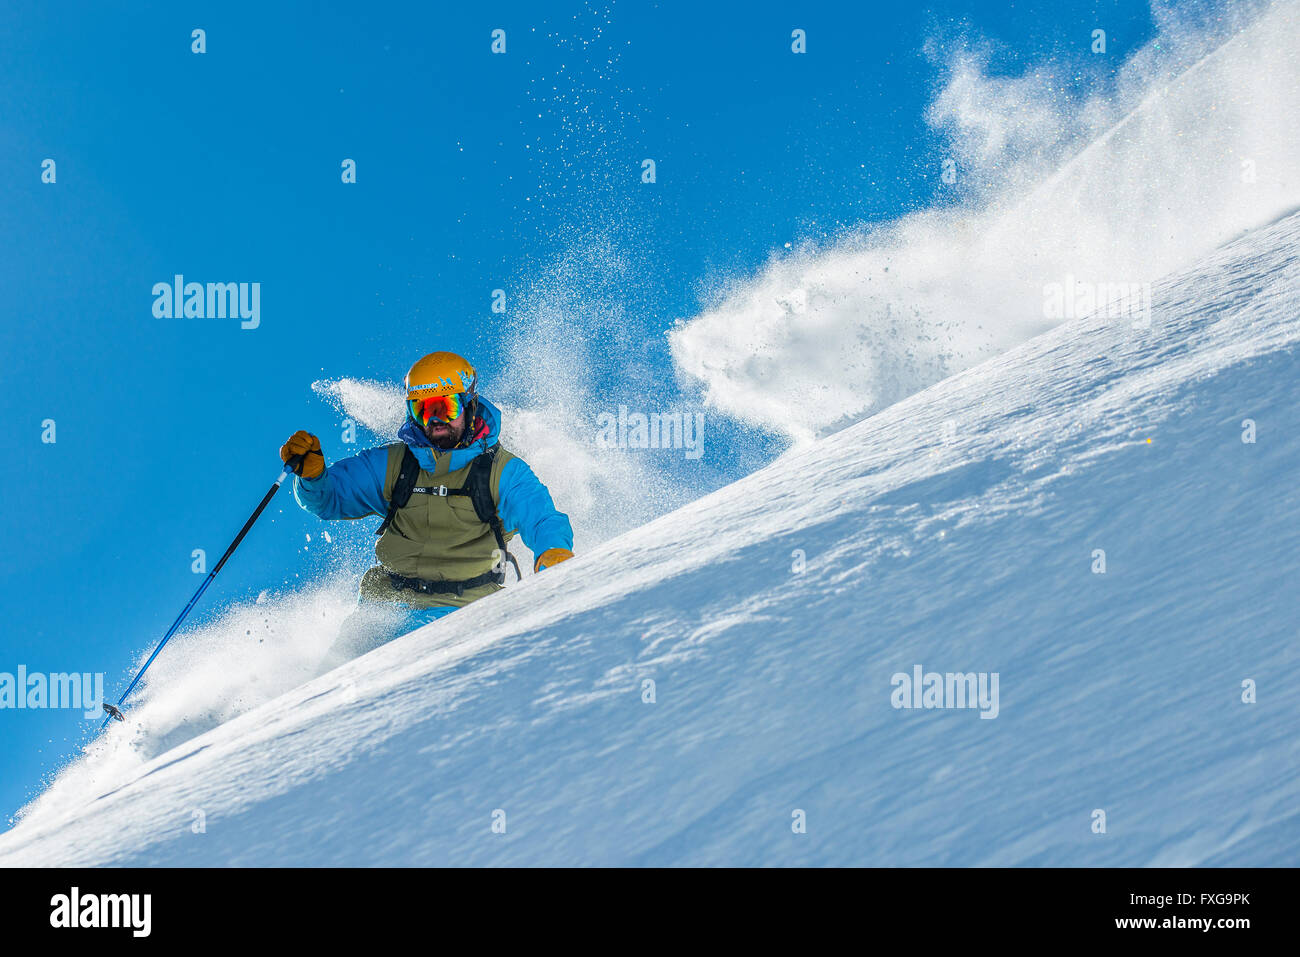 Off piste skiing in the French resort of Courchevel. - Stock Image